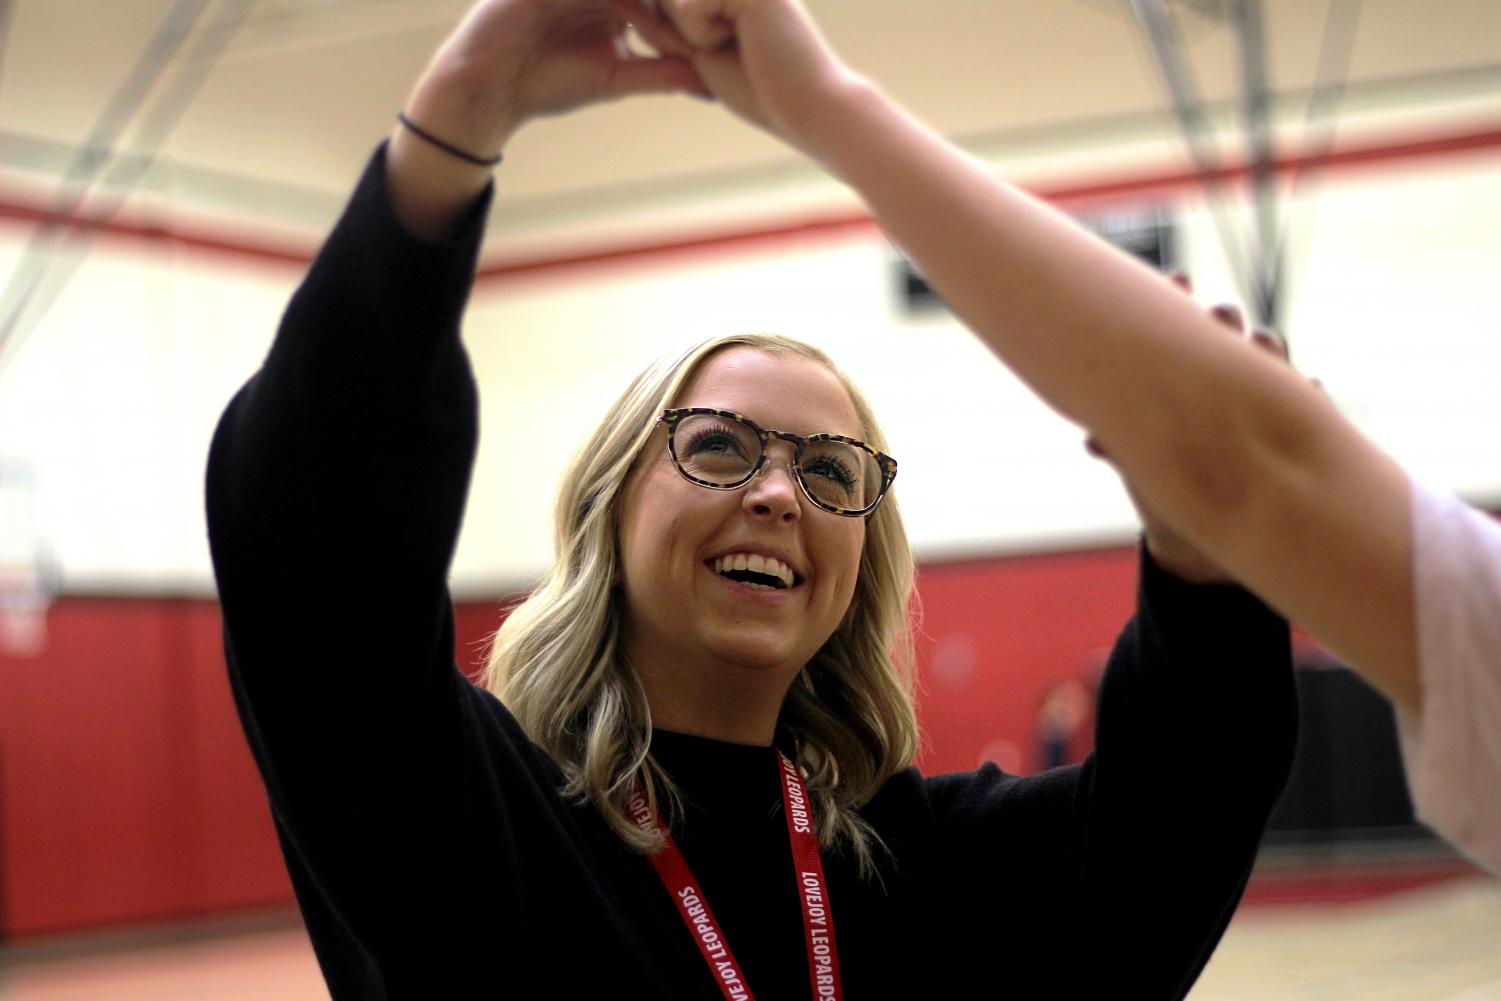 New JV cheer coach and leadership teacher Ms. Pikl, corrects a cheerleader's arm positioning. Before coming to the school she taught in Oklahoma.